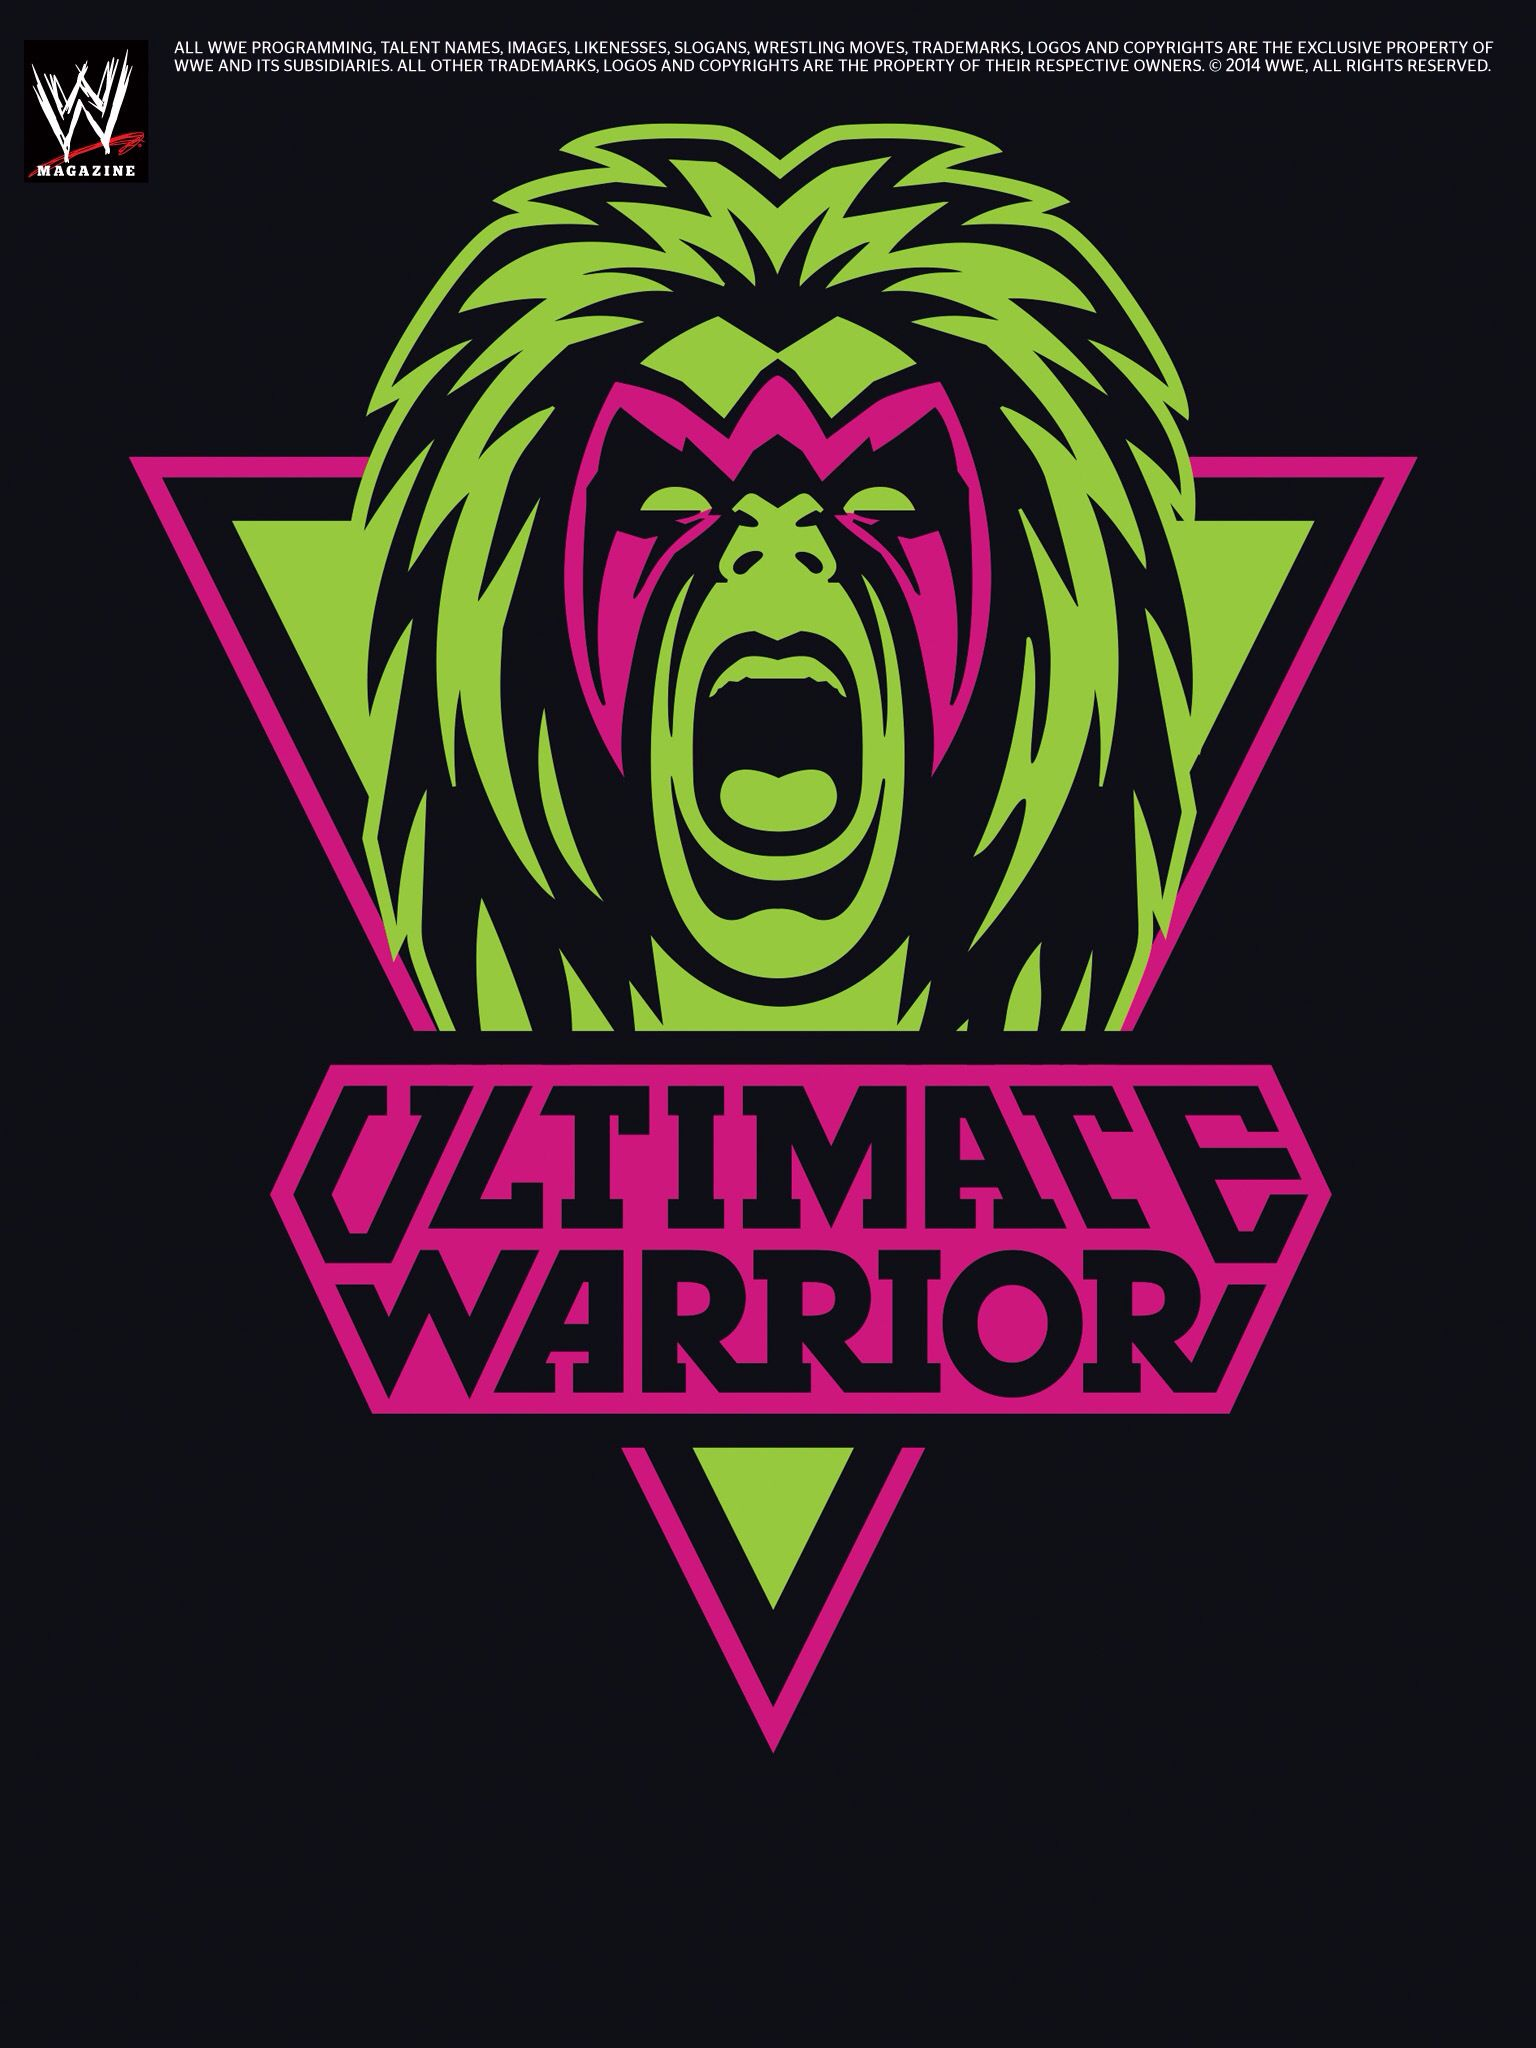 Wwe Magazine Ultimate Warrior Poster C Wwe All Rights Reserved Wwf Logo Wwe Wrestling Posters